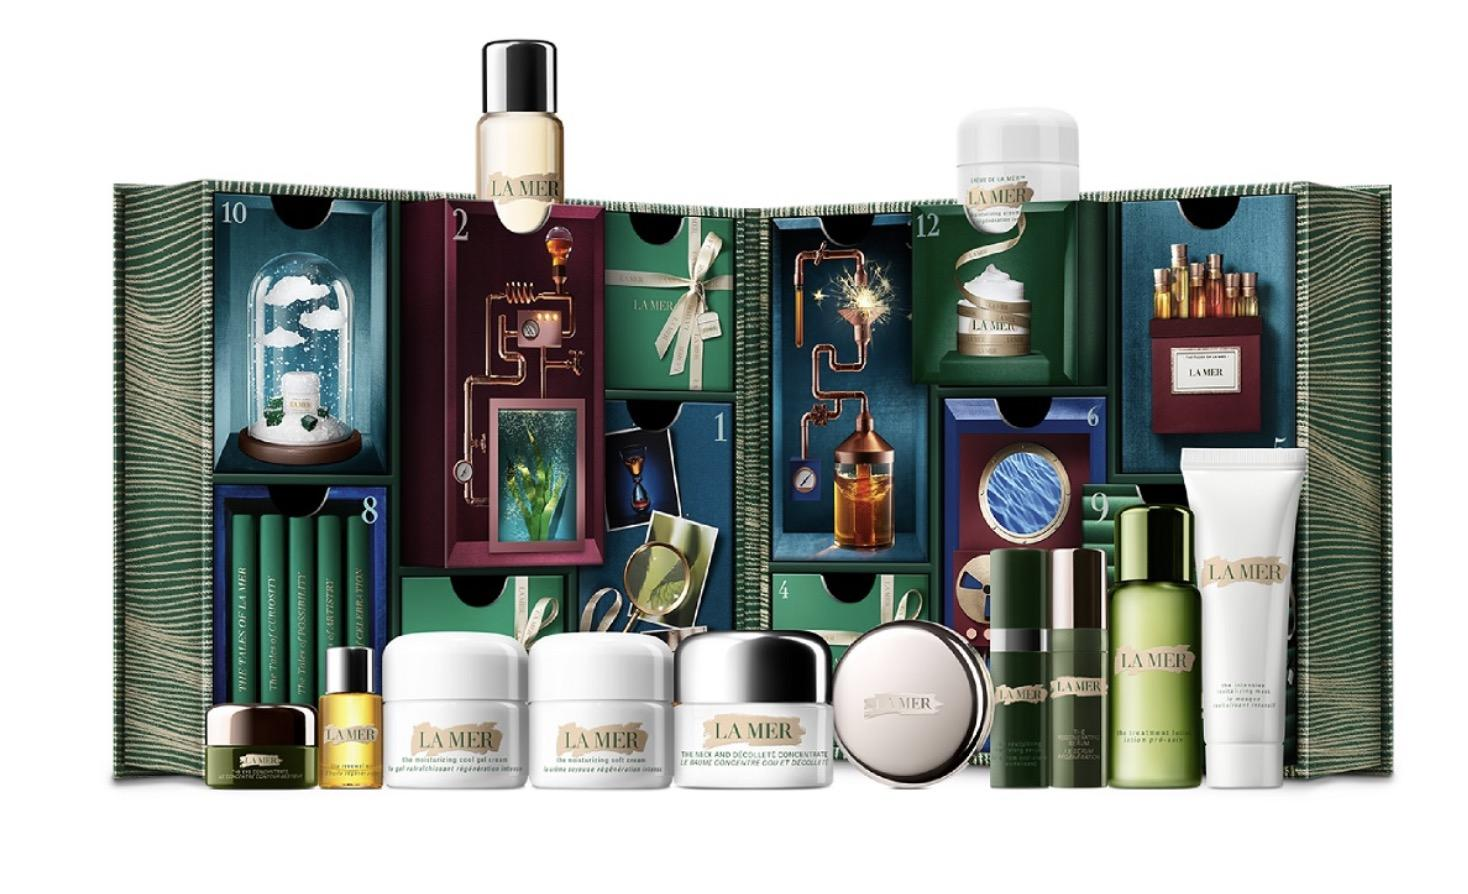 The World of La Mer Advent Calendar – Now Available!